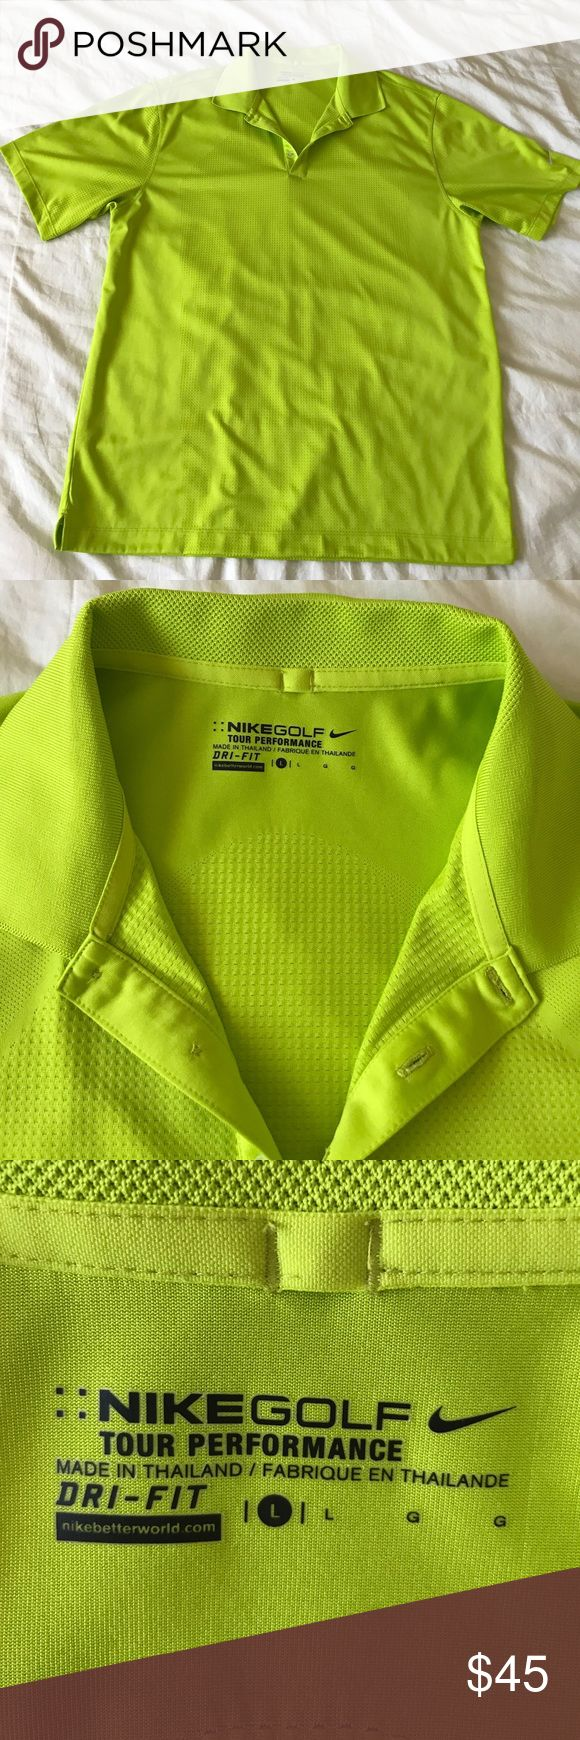 Nike Golf Tour Performance Dri-Fit polo Nike Golf polo made of their incredible dri-fit material that keeps the sweat away. Excellent condition with no signs of wear. It's a bright electric green color. Nike Shirts Polos